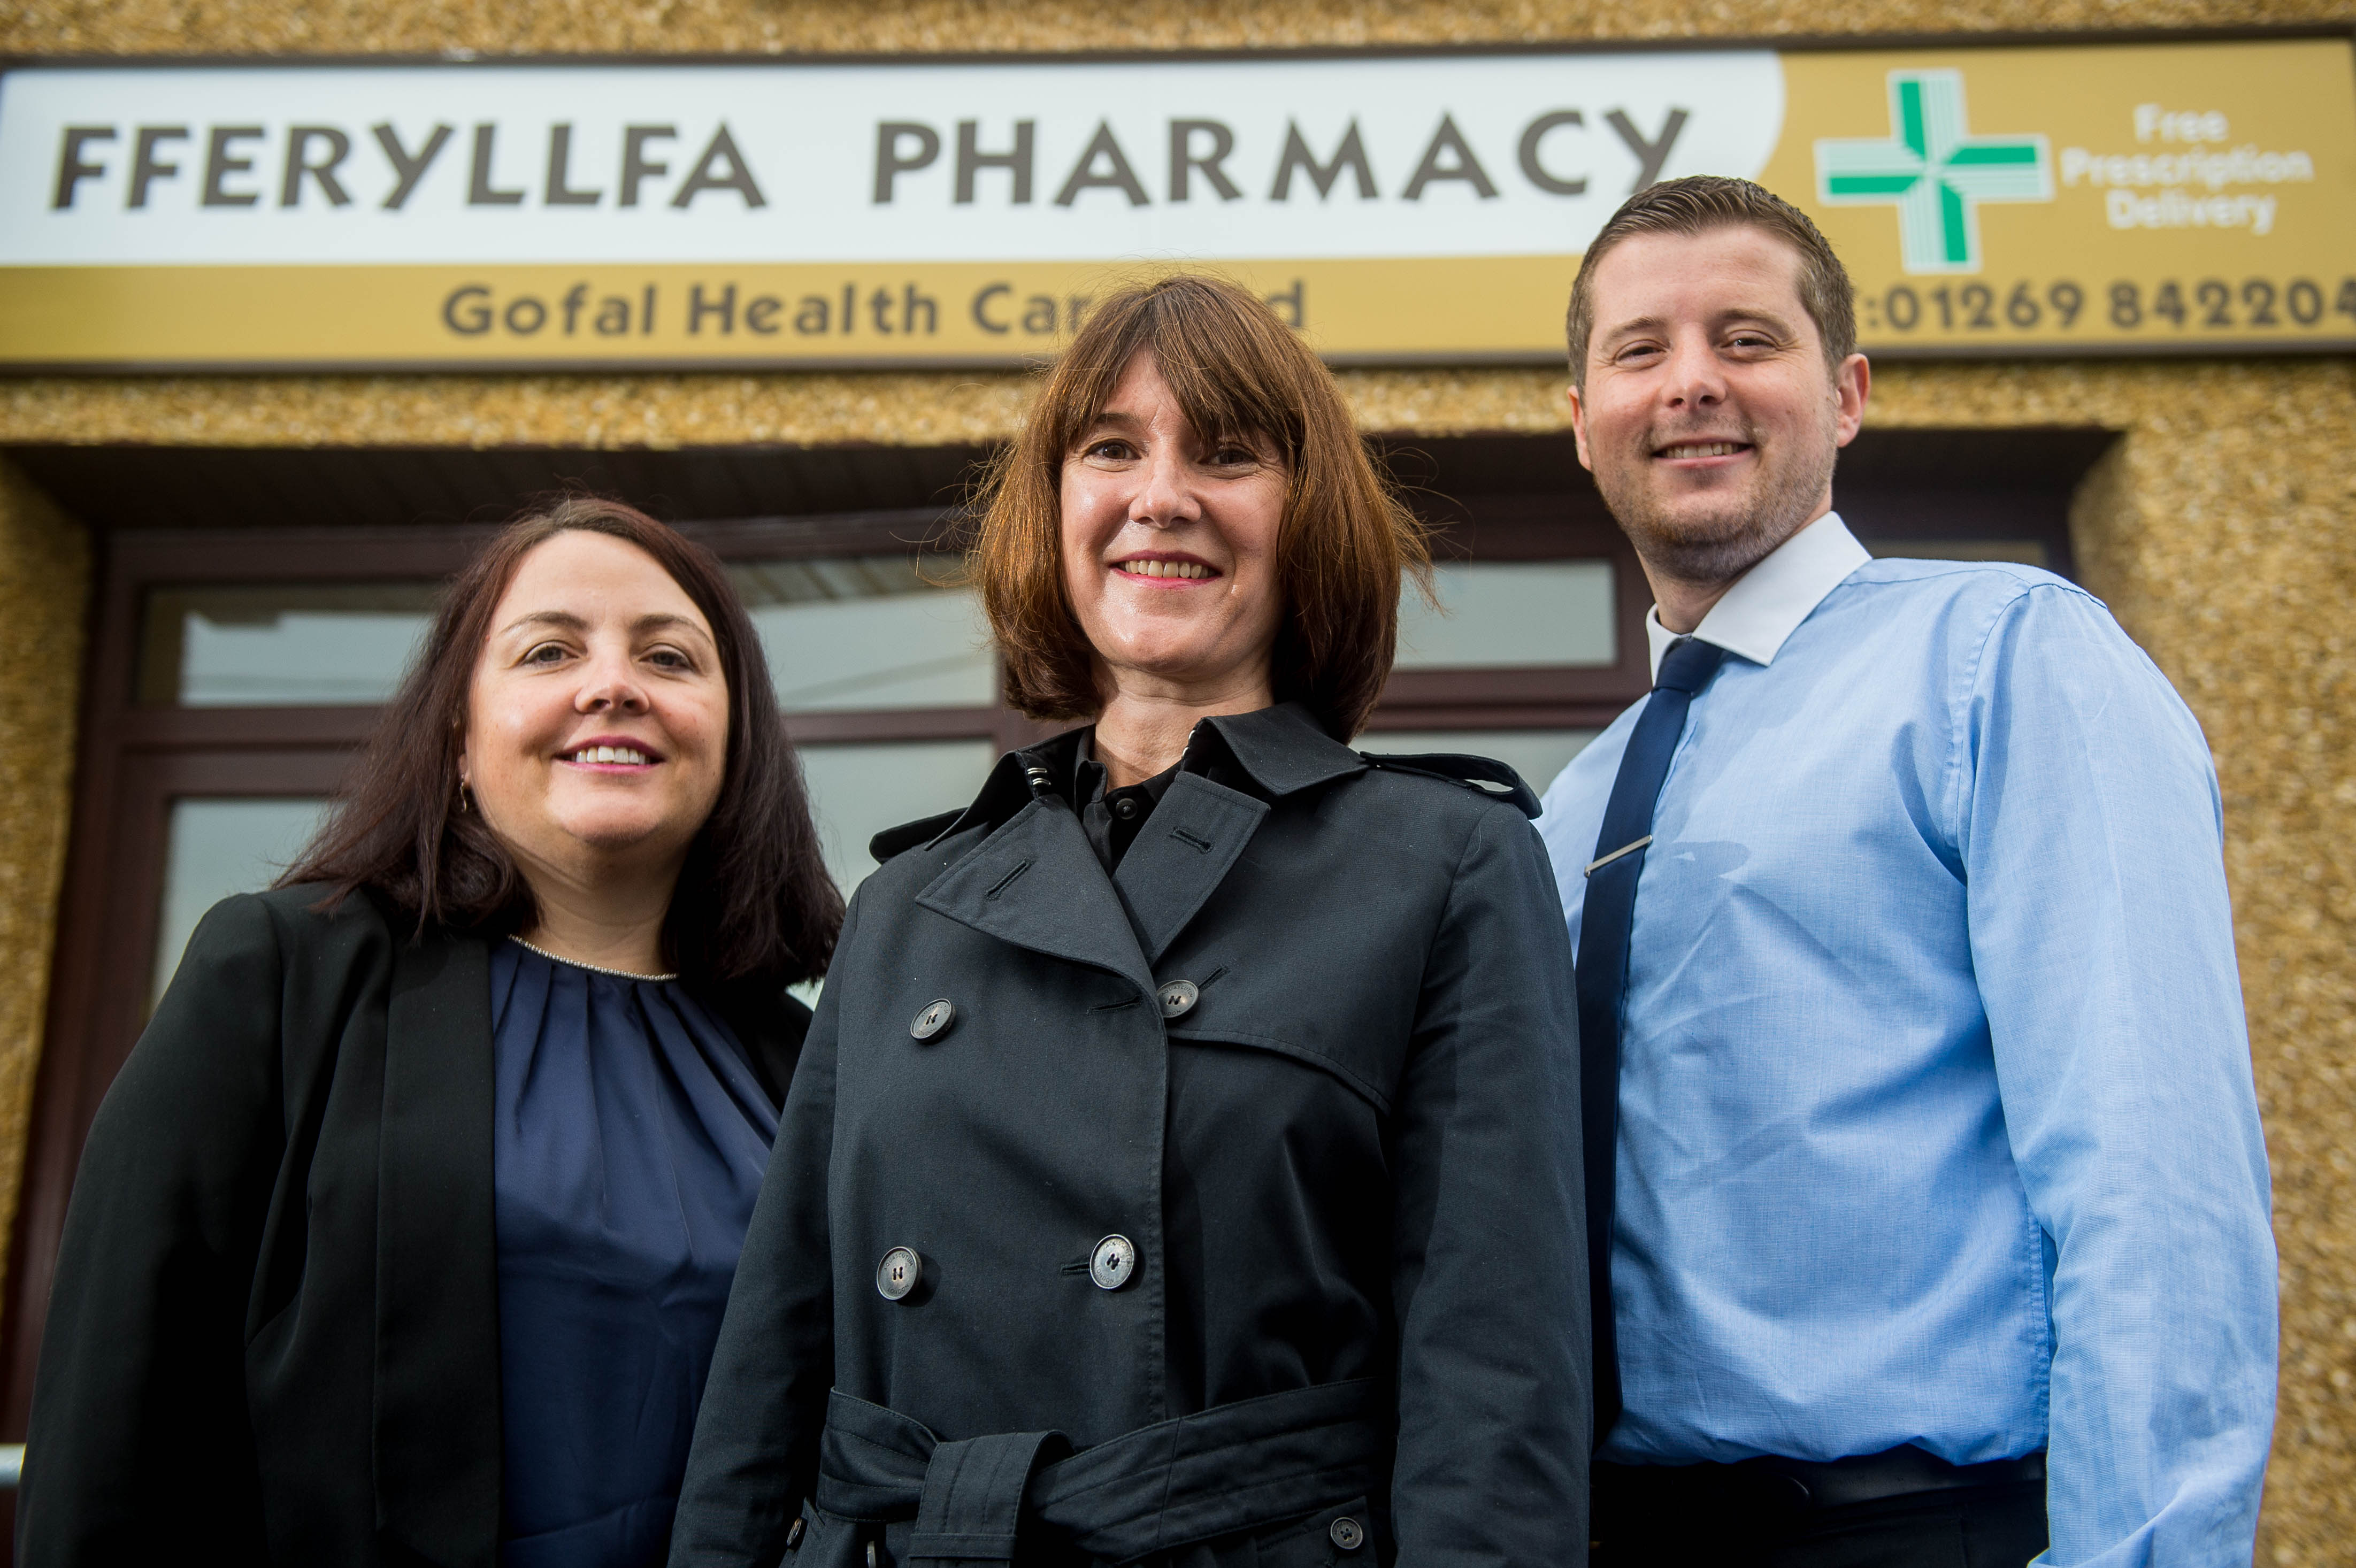 Penny Griffiths (Fferylla Pharmacy), Betsan Powell (JCP Solicitors) and Gareth Harlow (Fferylla Pharmacy)